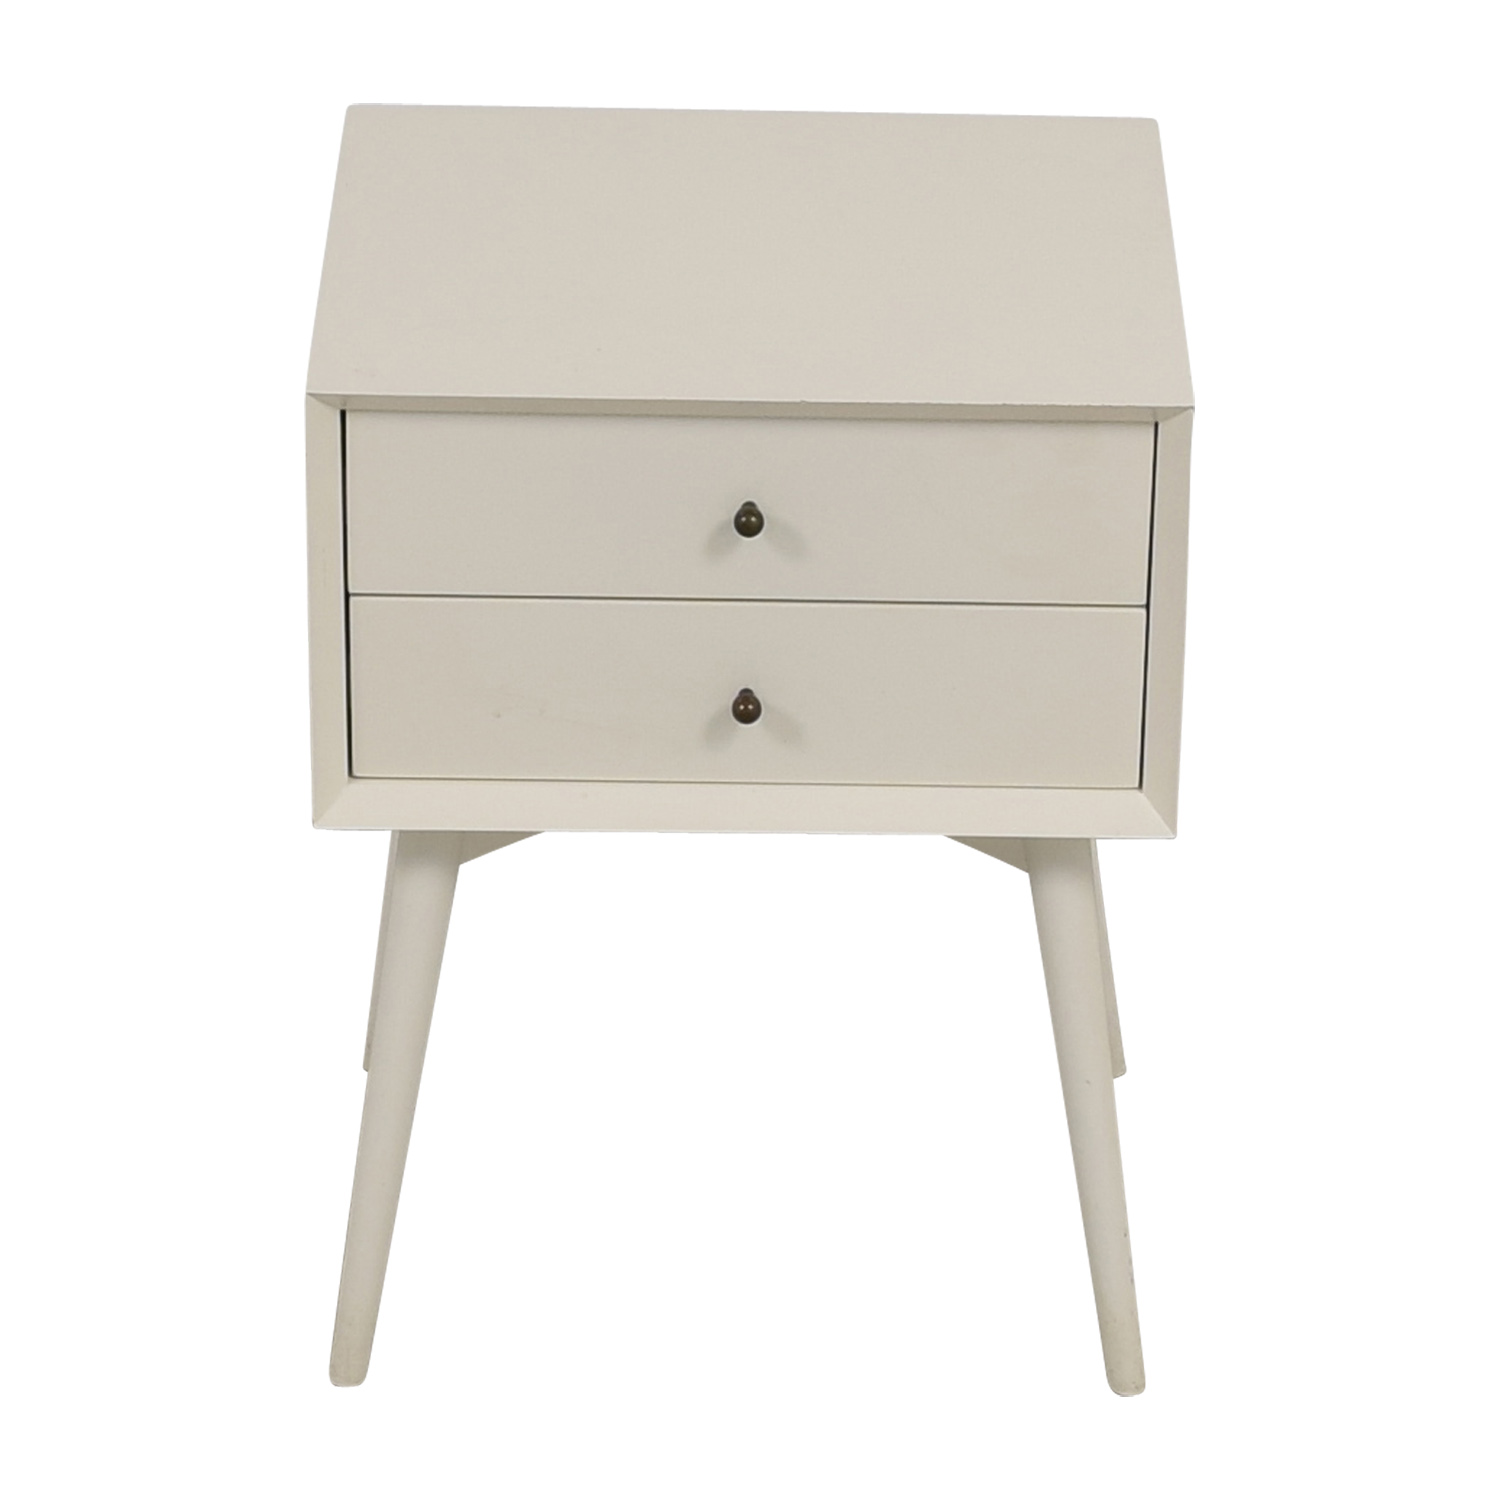 West Elm White Two-Drawer Nightstand / End Tables